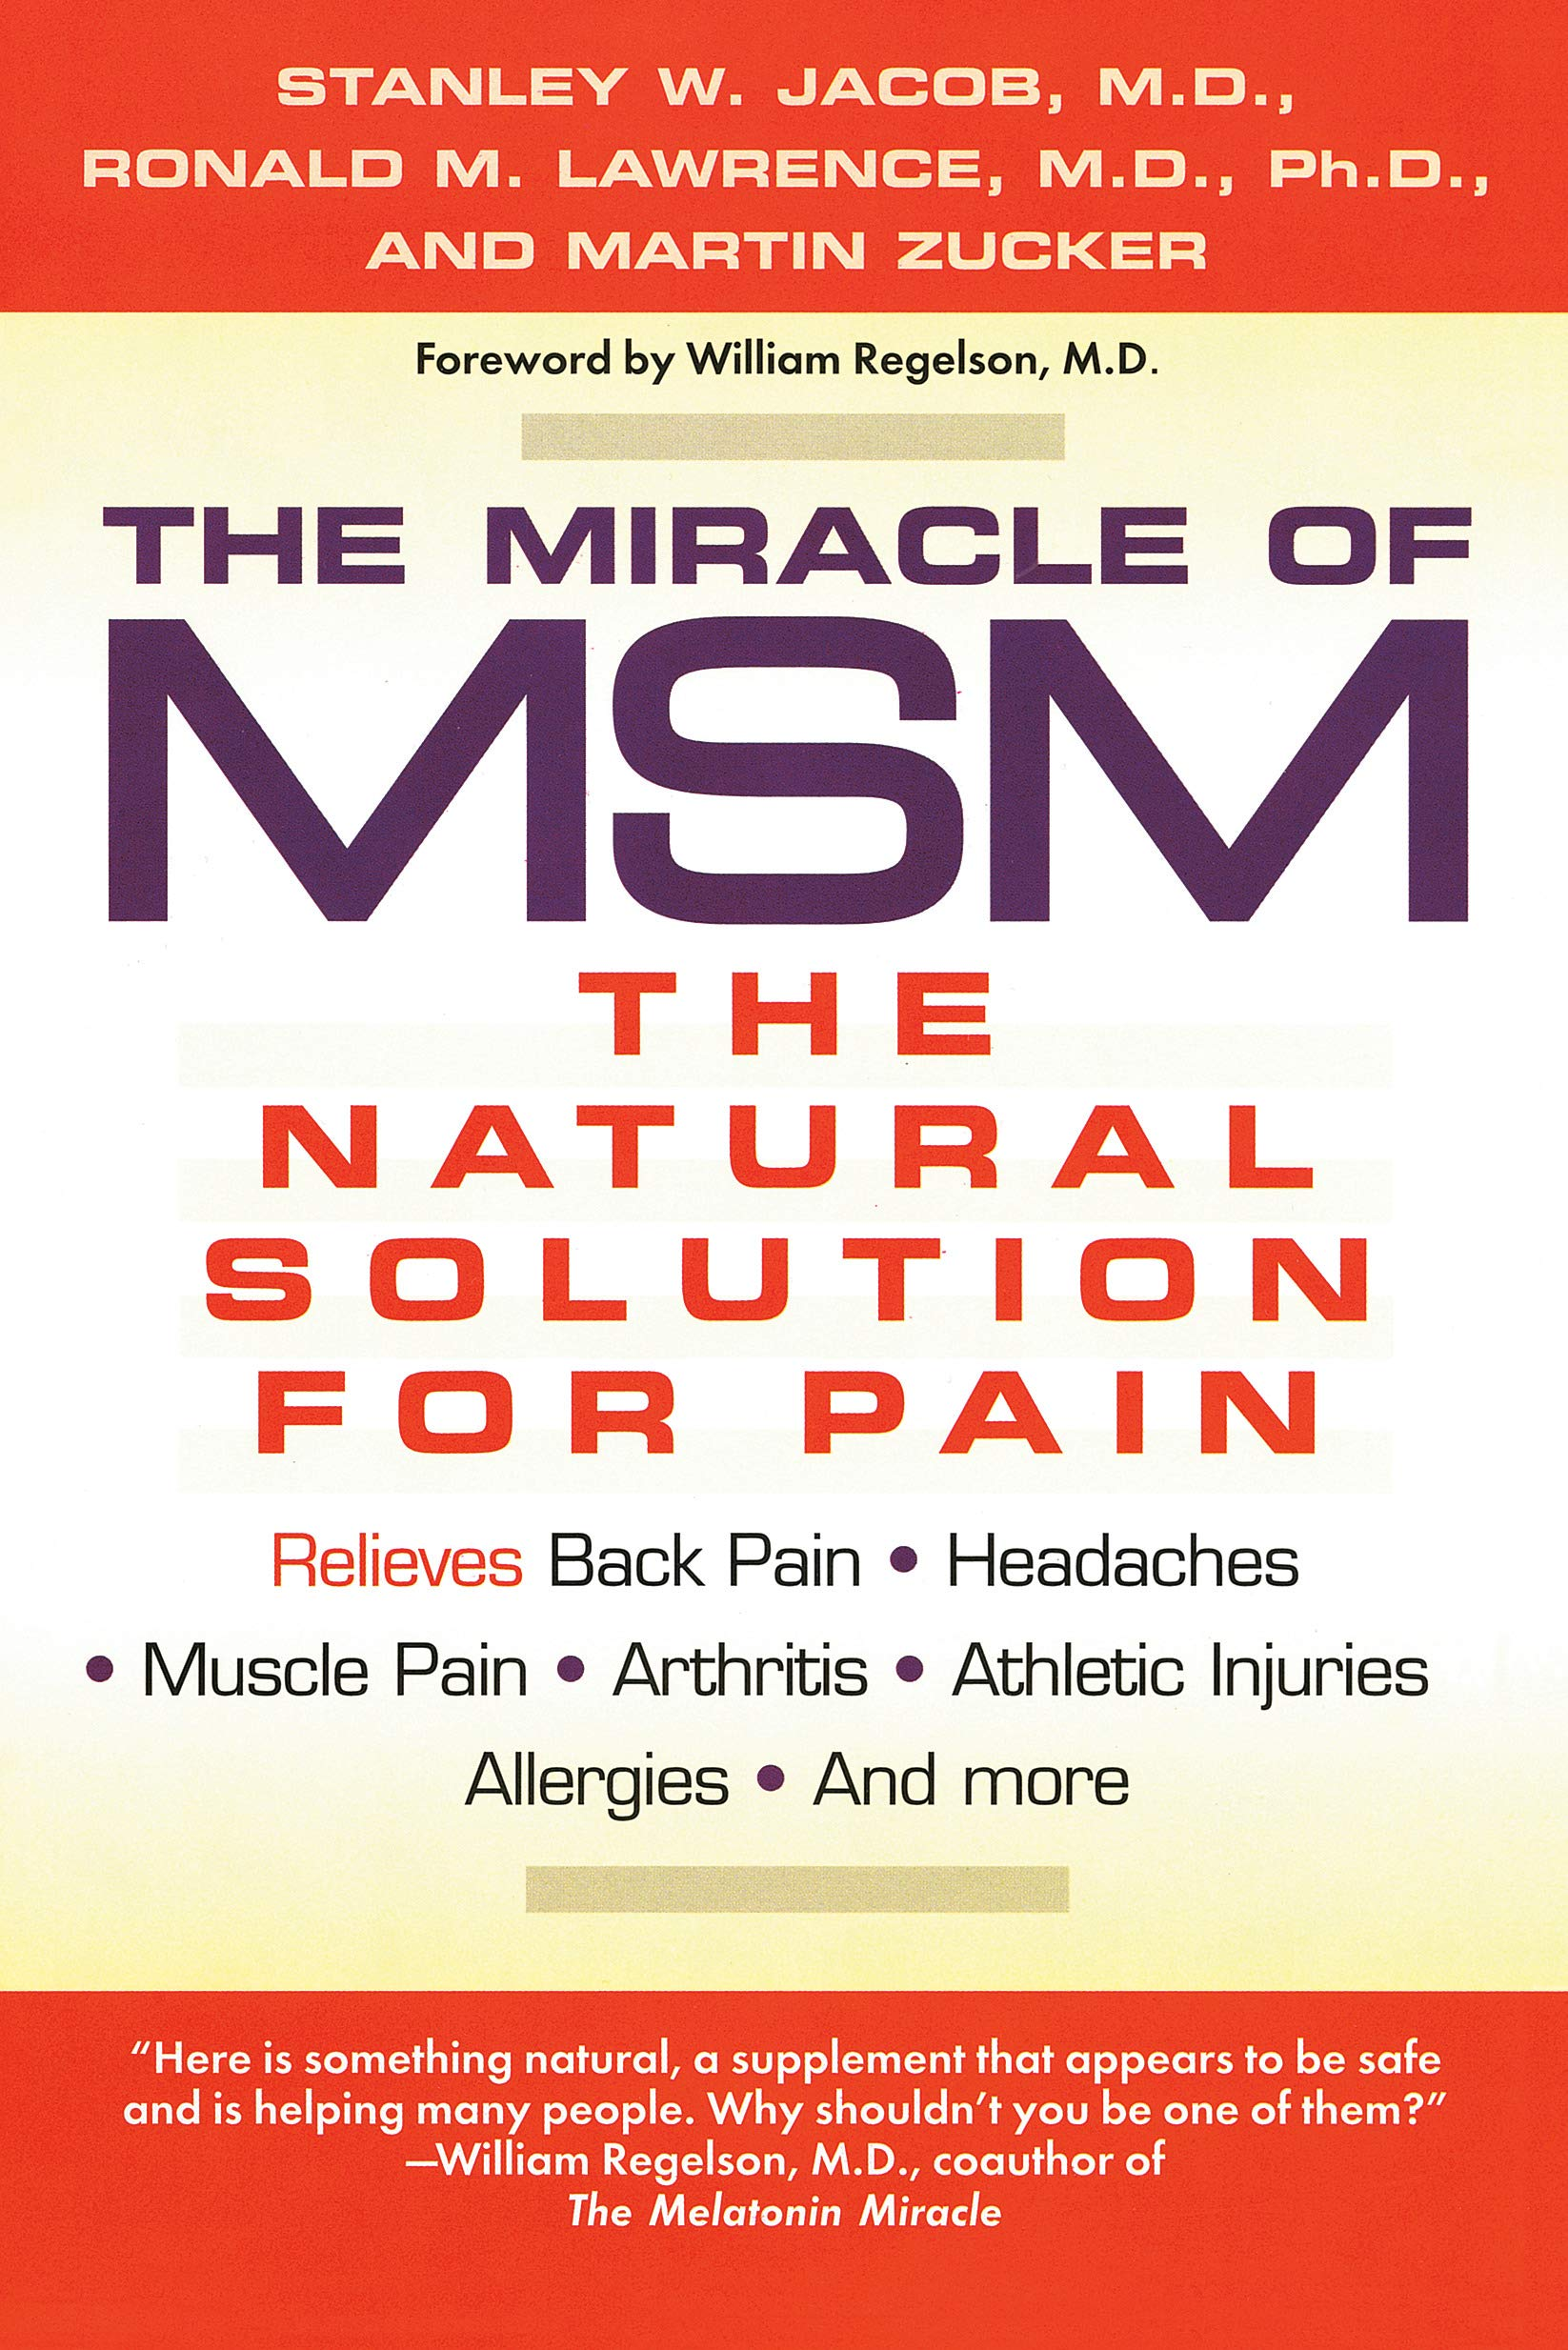 The Miracle of Msm: The Natural Solution for Pain: Amazon.es: Stanley W. Jacob: Libros en idiomas extranjeros